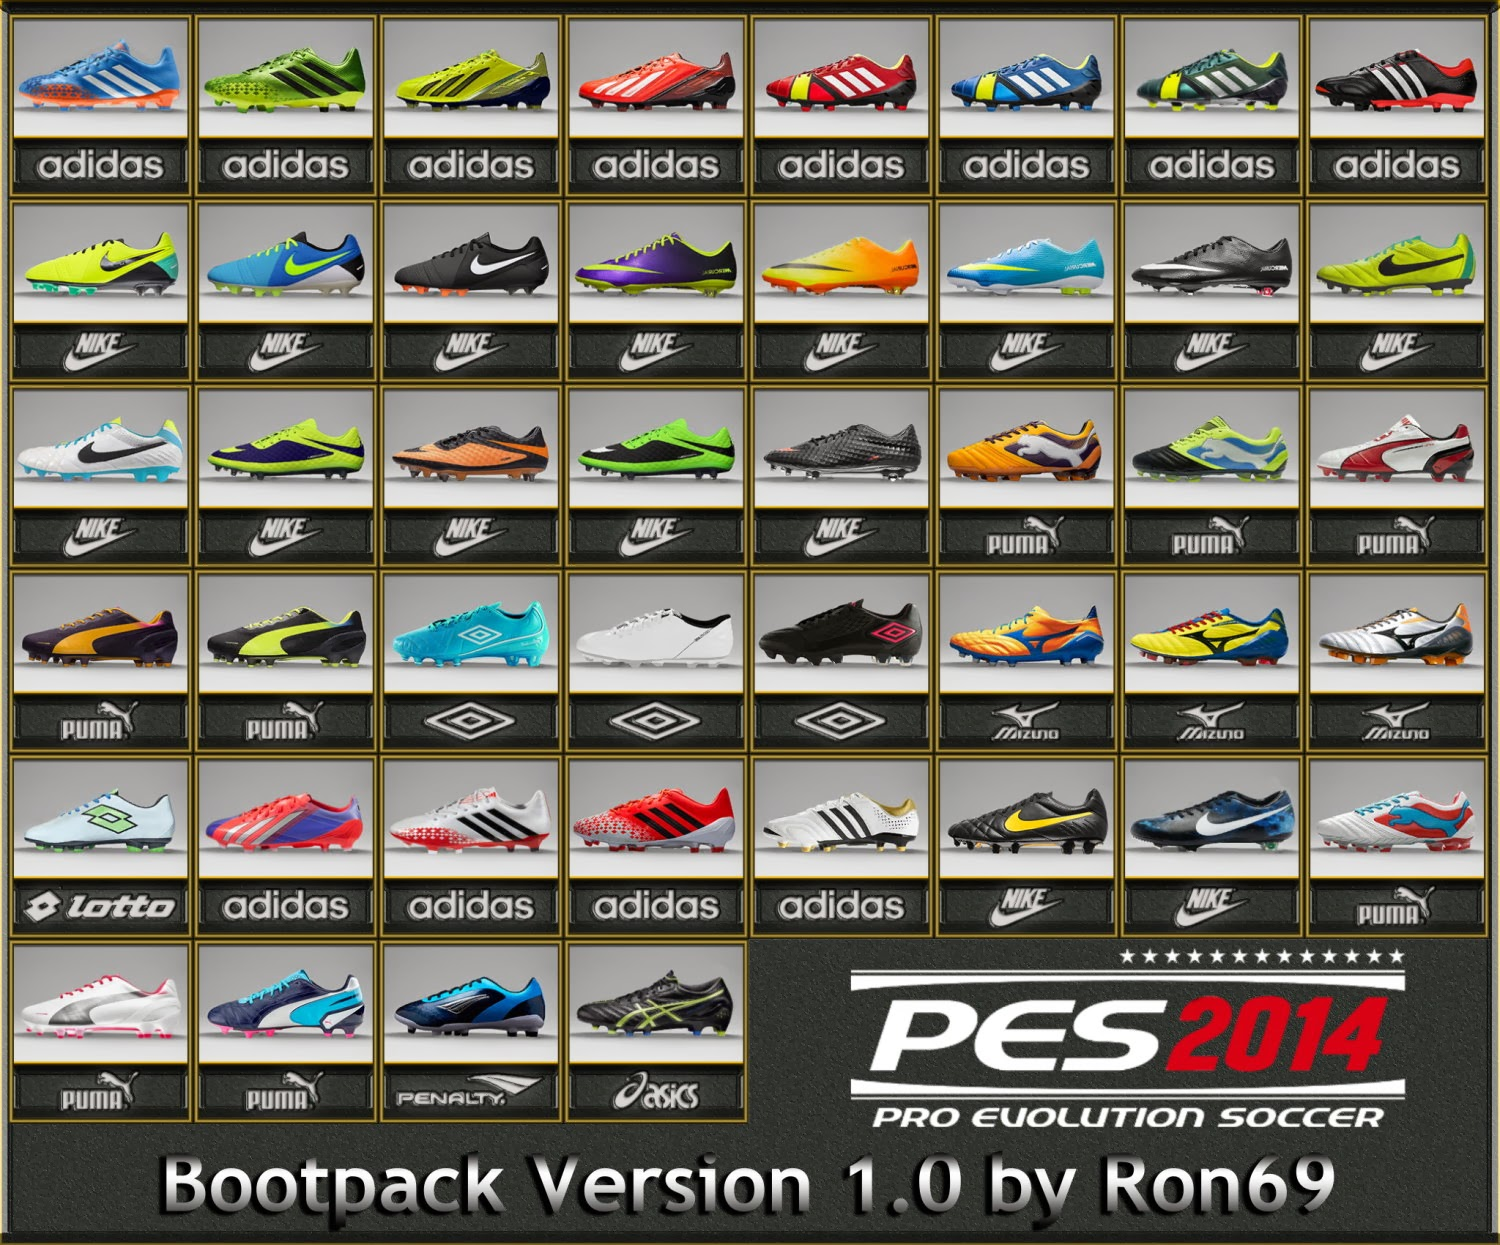 PES 2014 Bootpack Version 1.0 by Ron69